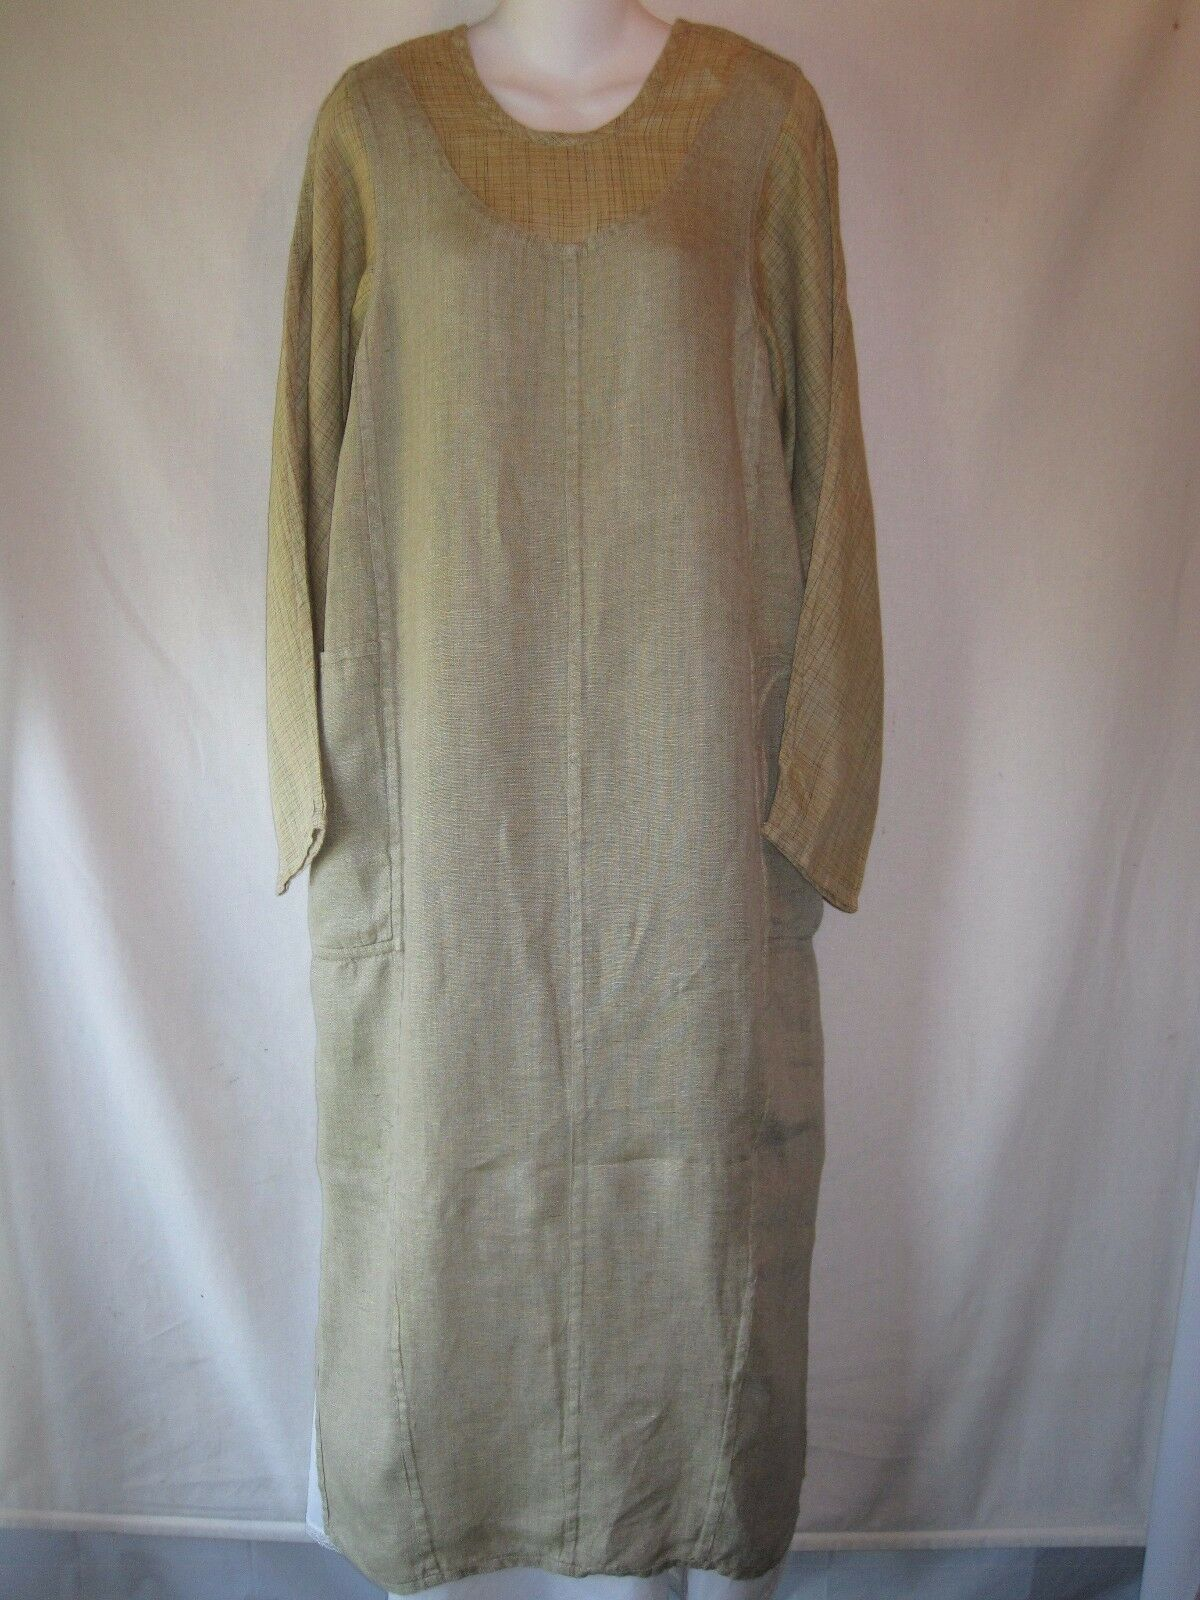 1998 Premier FLAX Jeanne Engelhart Faked You Out Dress Meadow Mesh Green Linen S